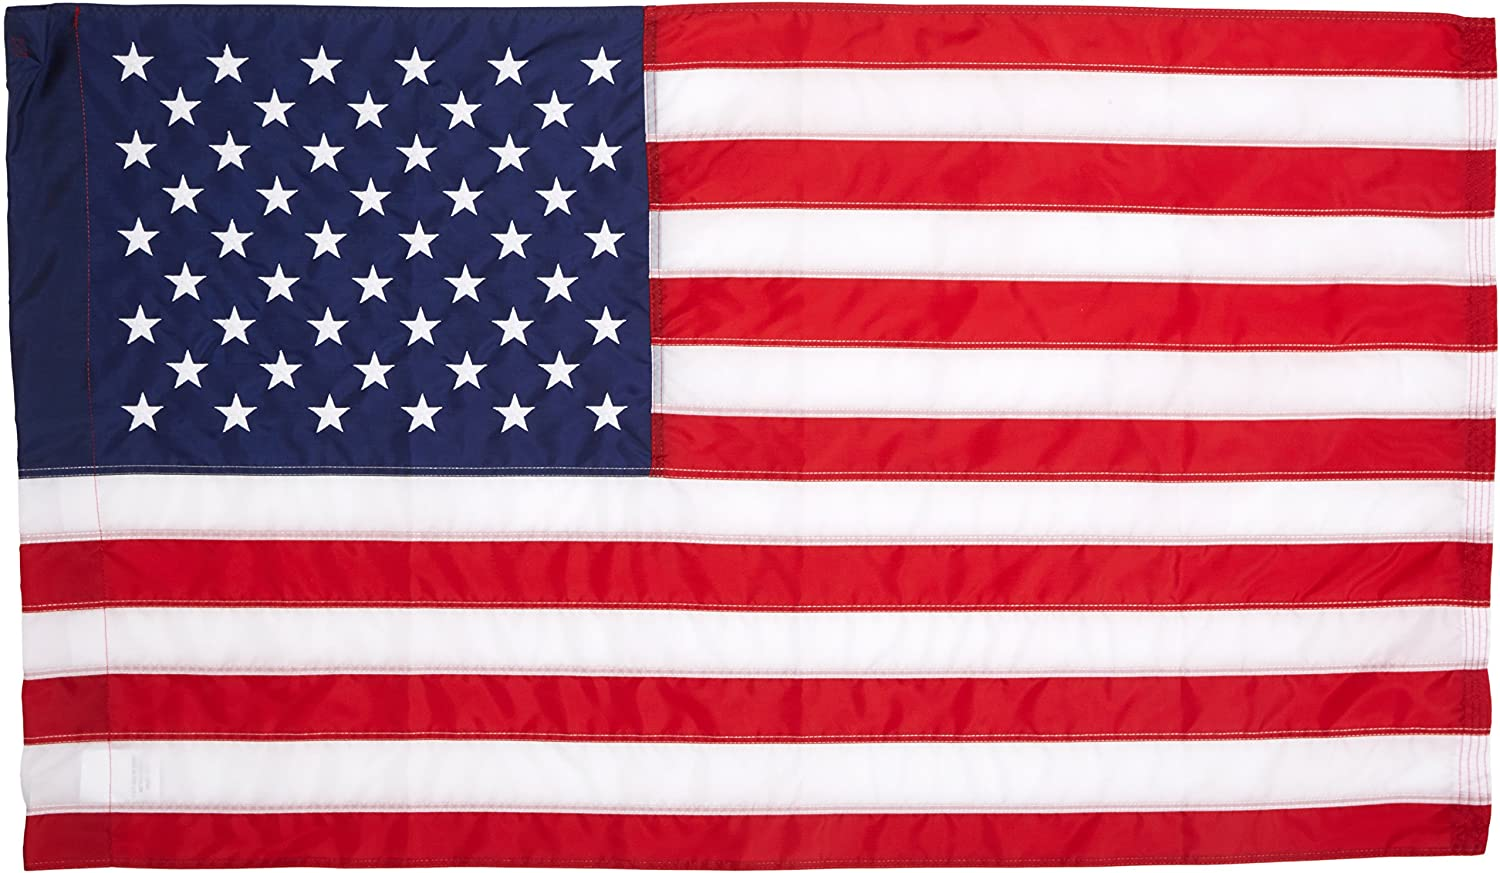 American Flag 2.5 by 4 feet Made in the USA Double Sticked Stripes made of Nylon #25403M